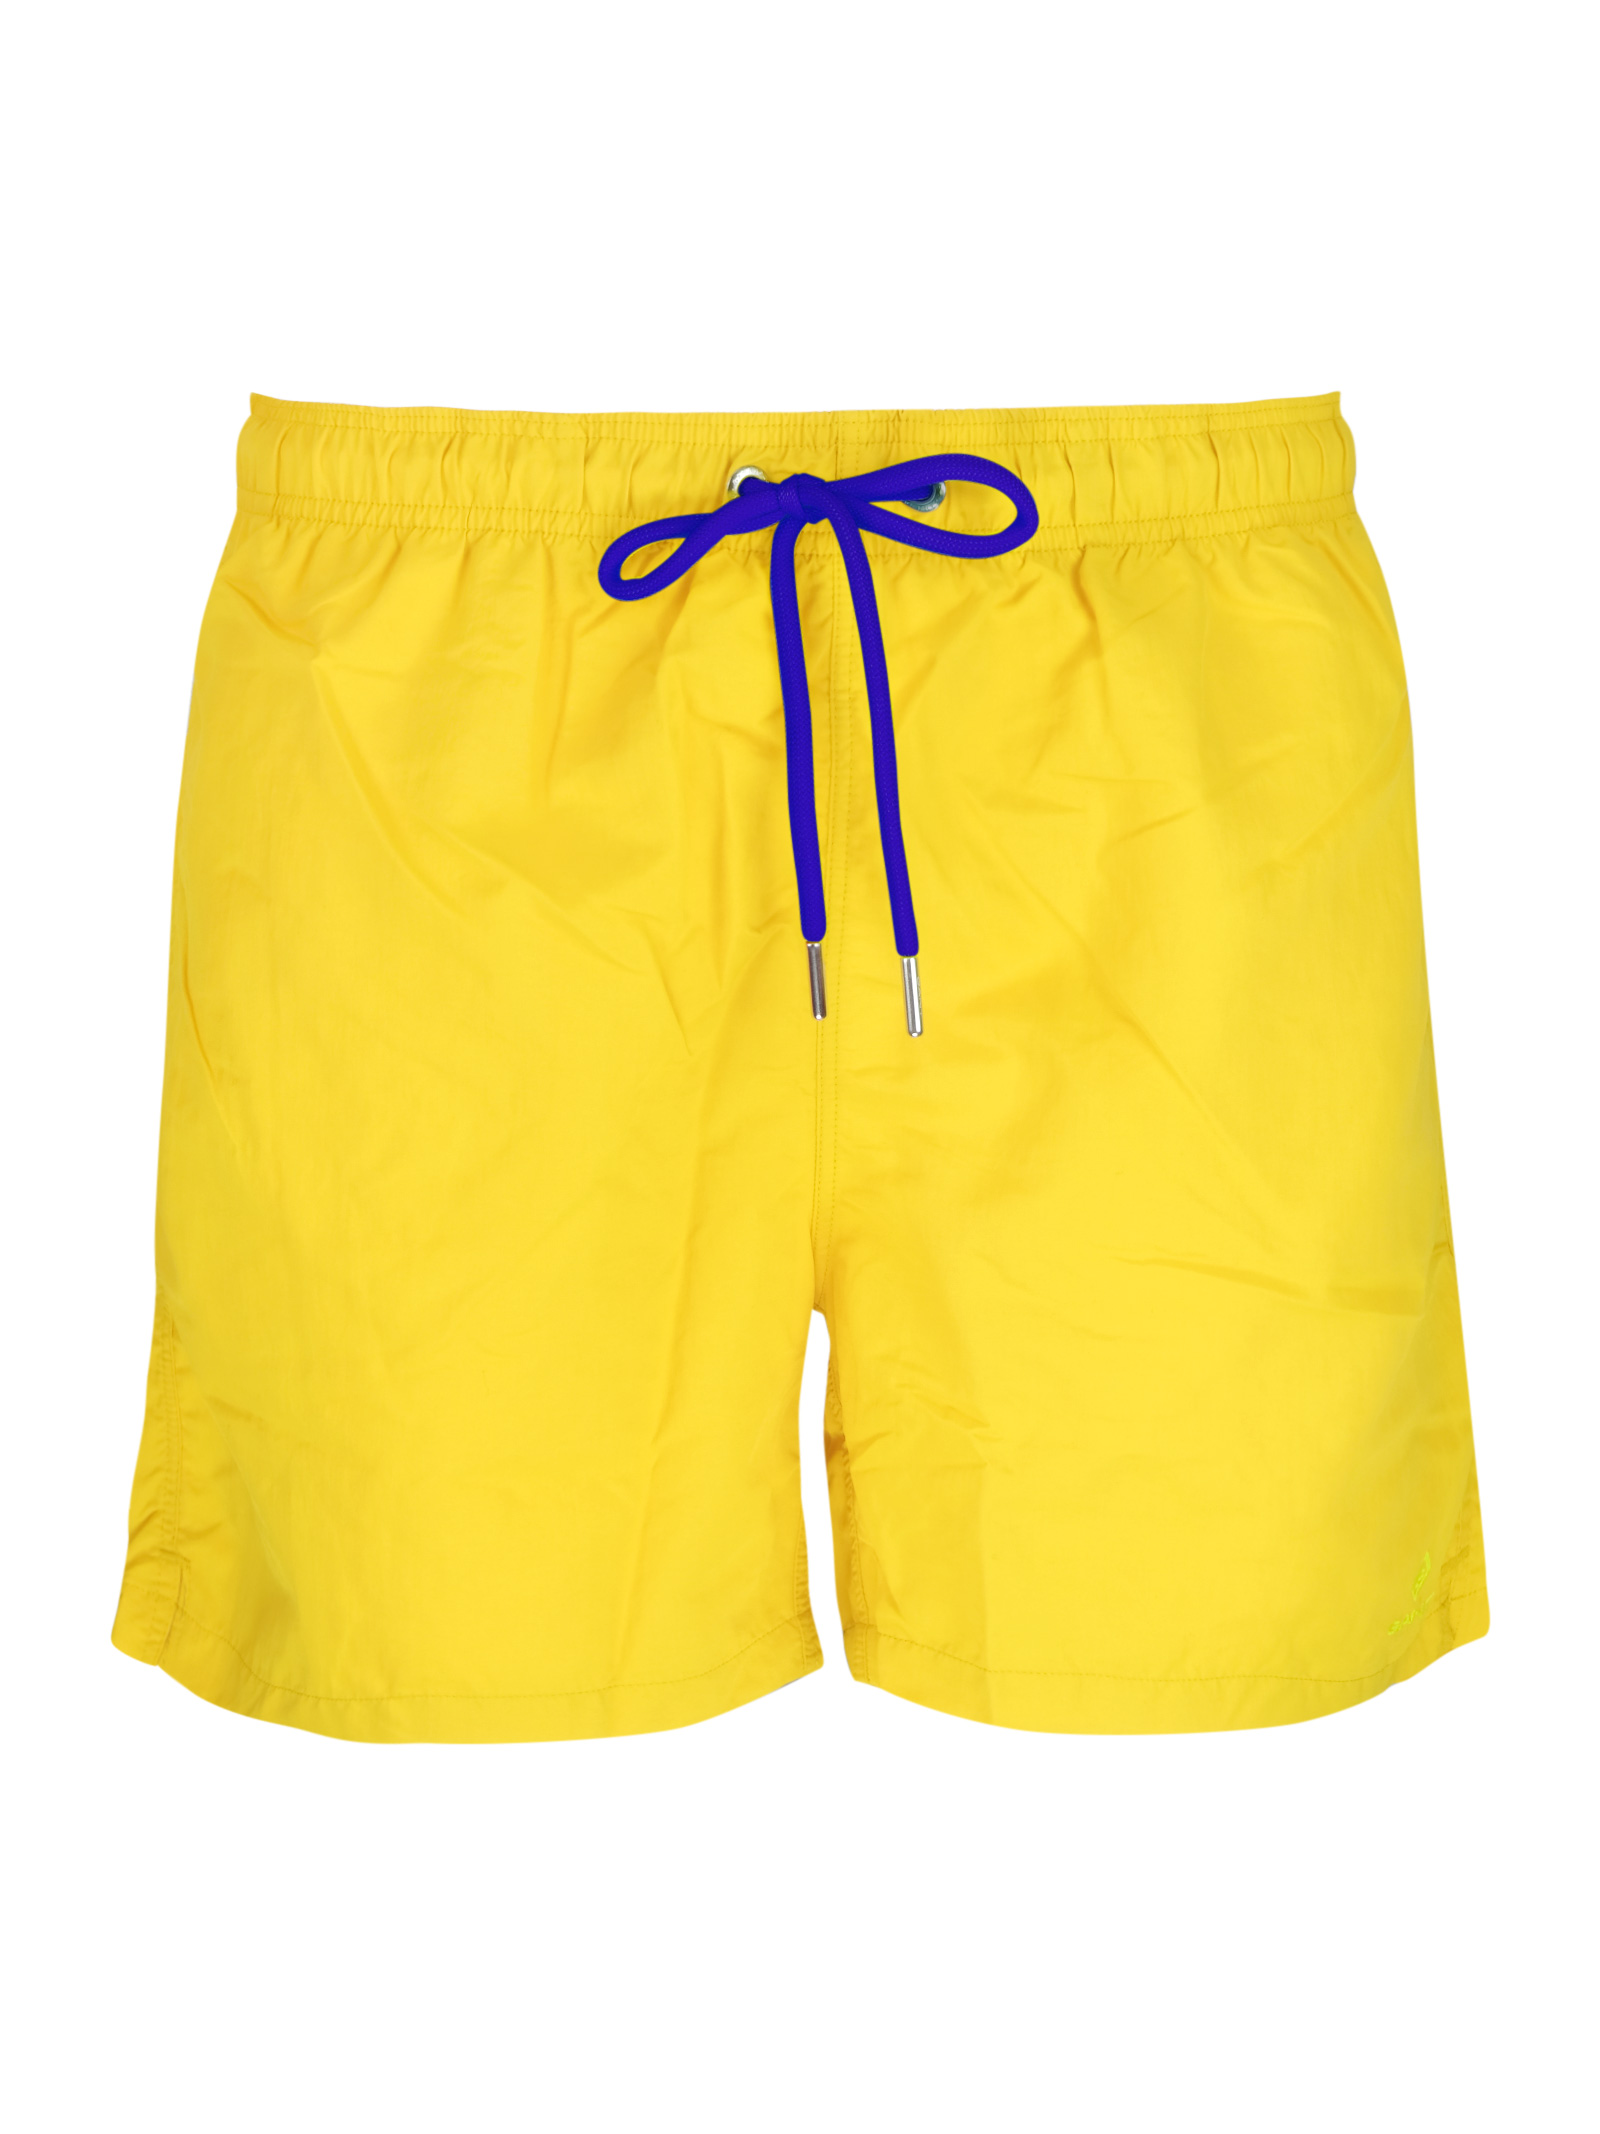 solid color swim trunk  GANT |  | 922016001728